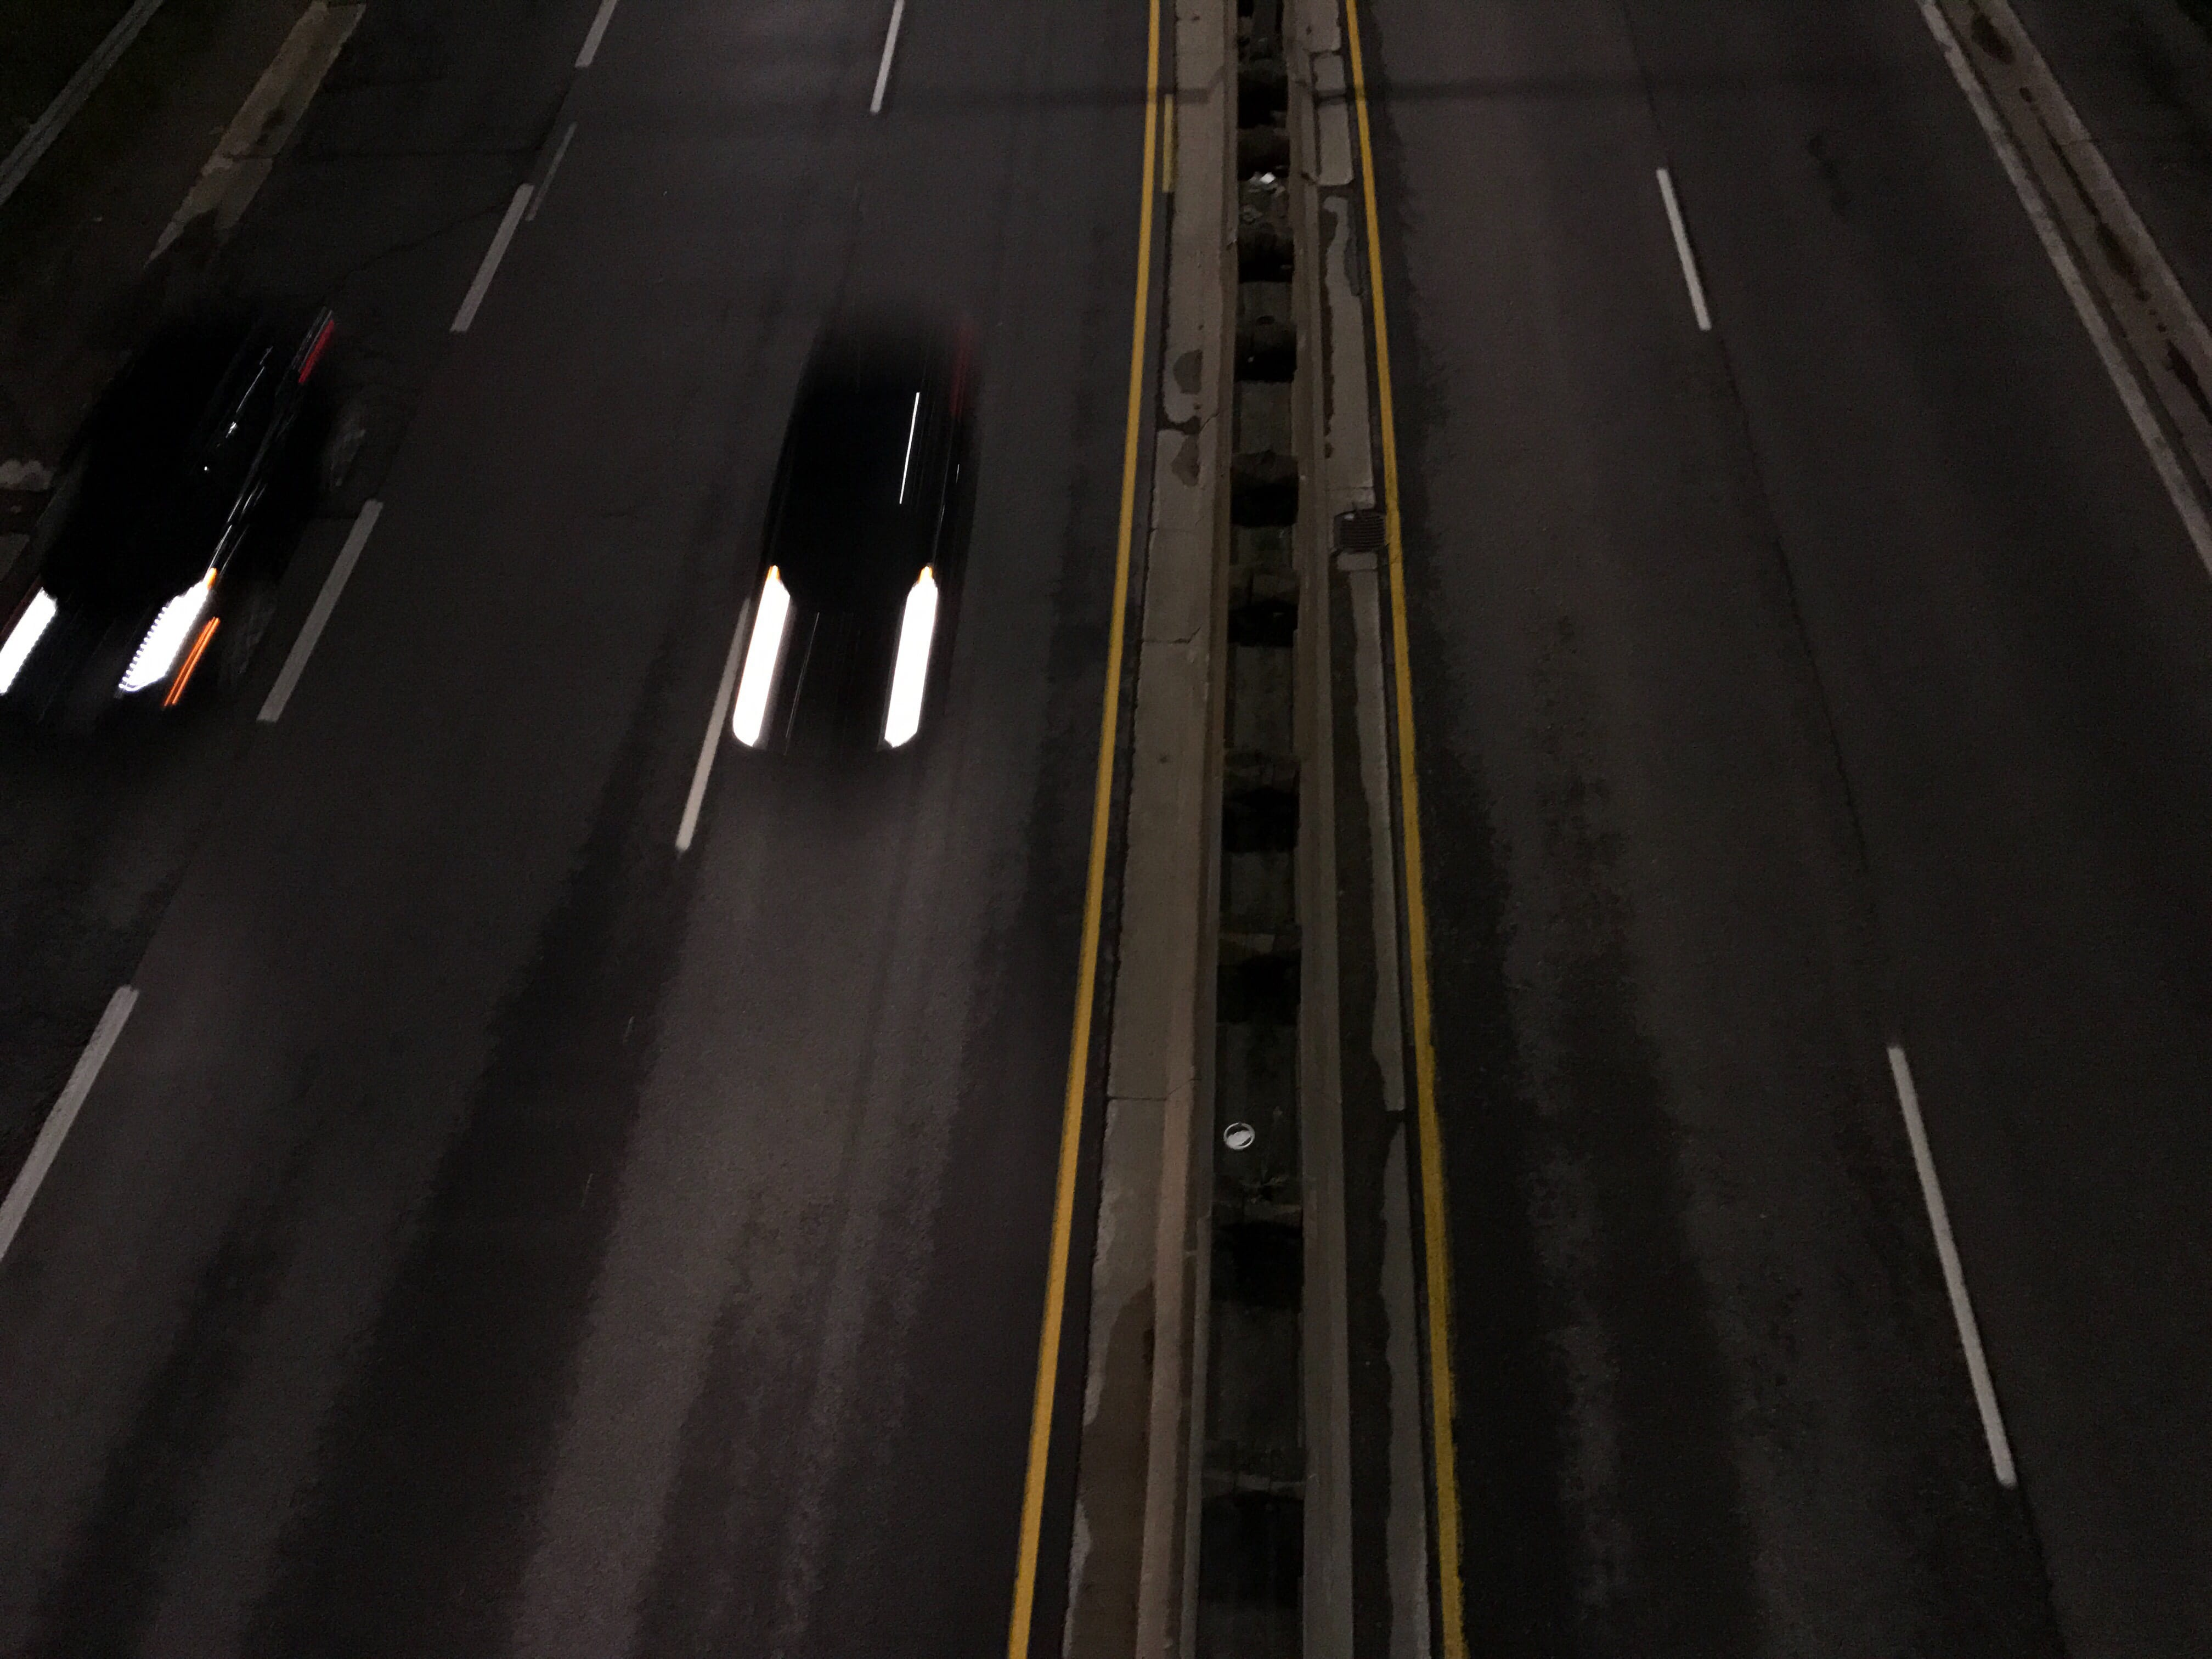 A photograph depicting Looking Down Overpass at Night